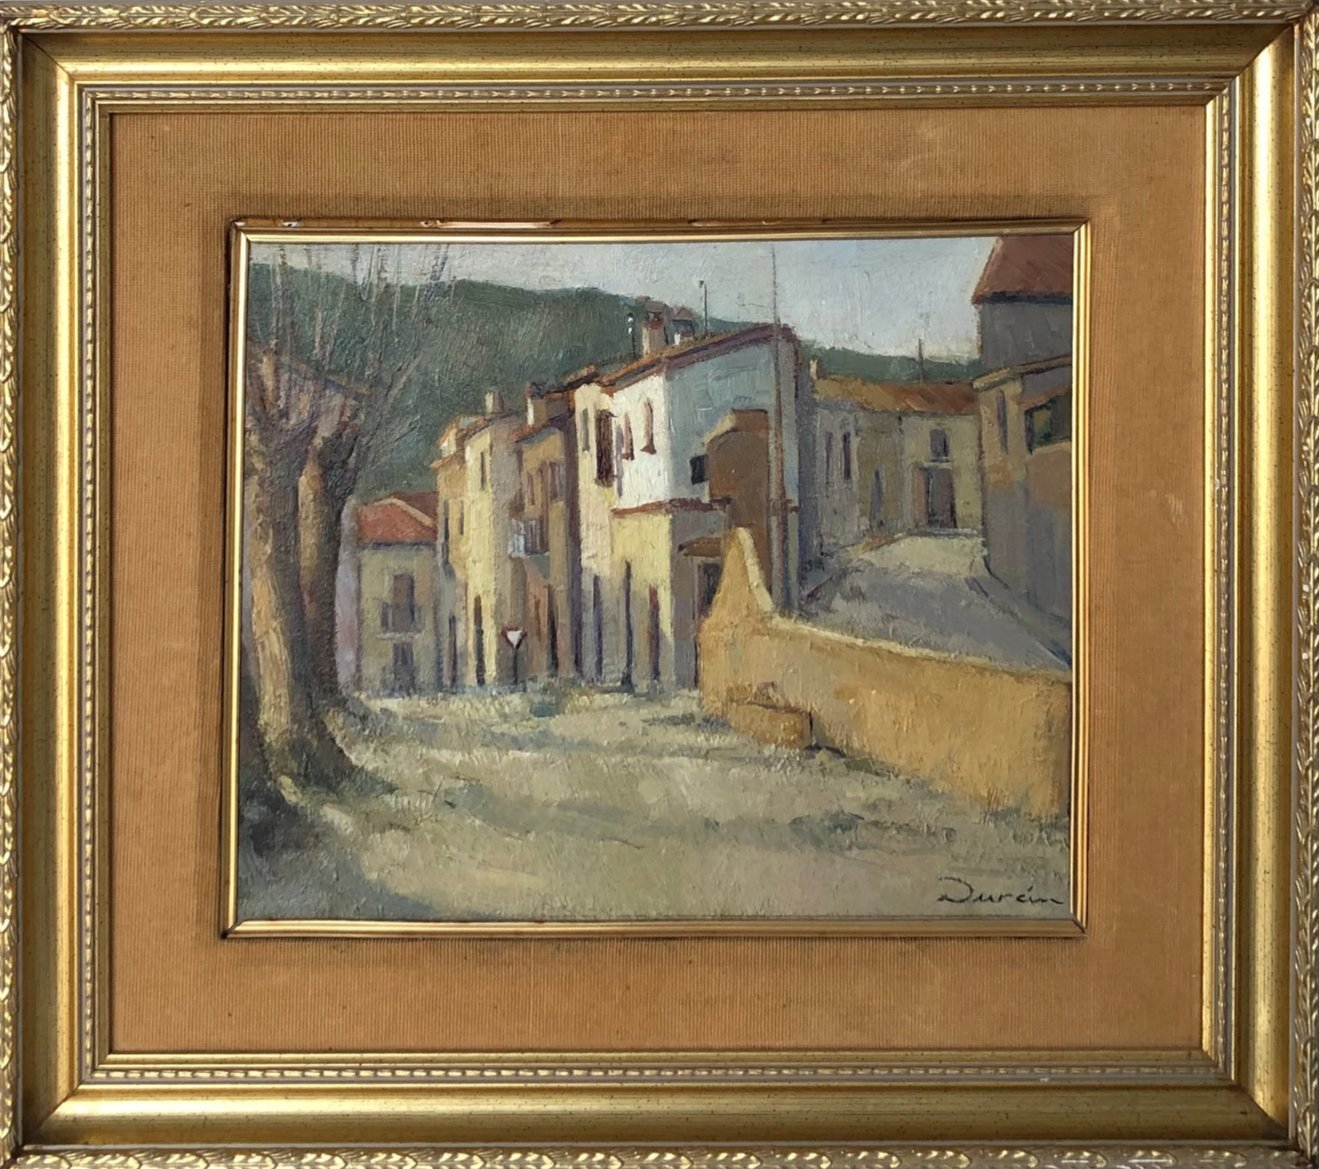 Rural Street Scene, 1940-60 by Durán. Oil on Board_Framed